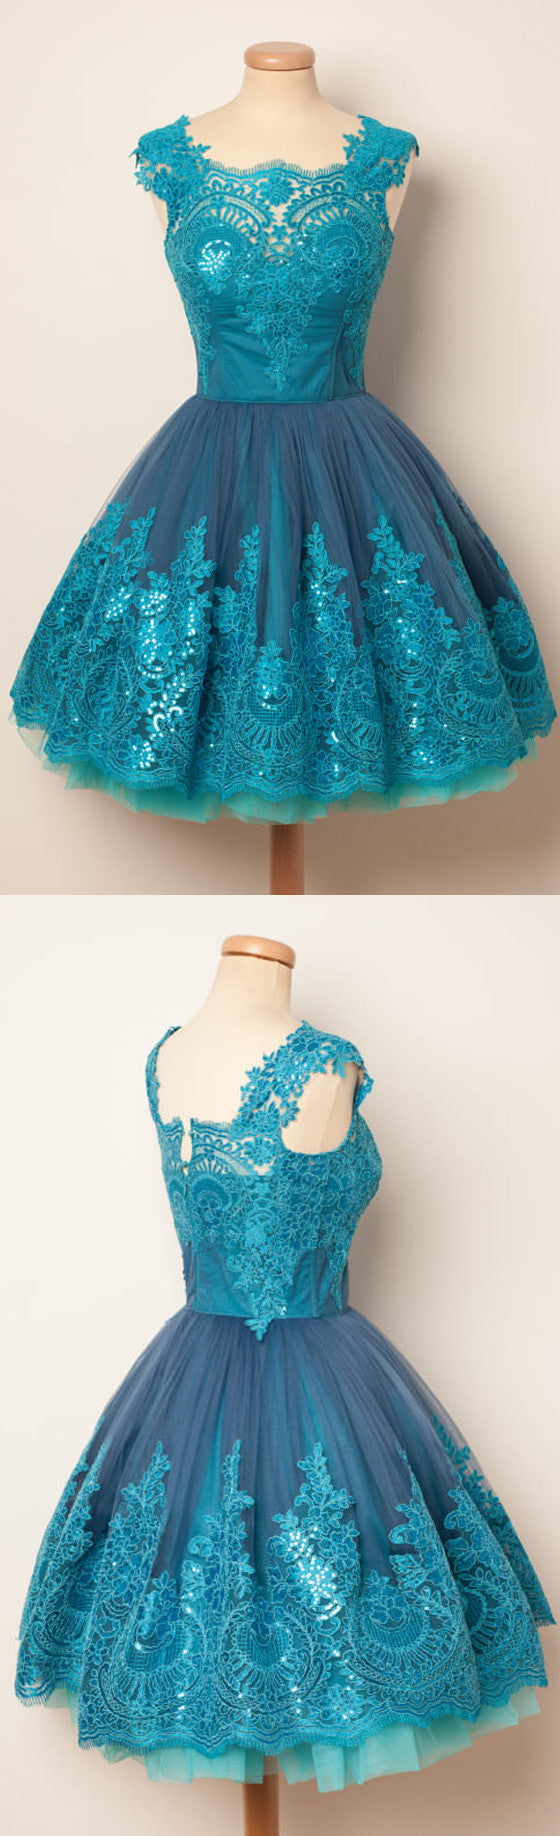 Blue Unique Applique Lovely Affordable Short Homecoming Dresses, PM0424